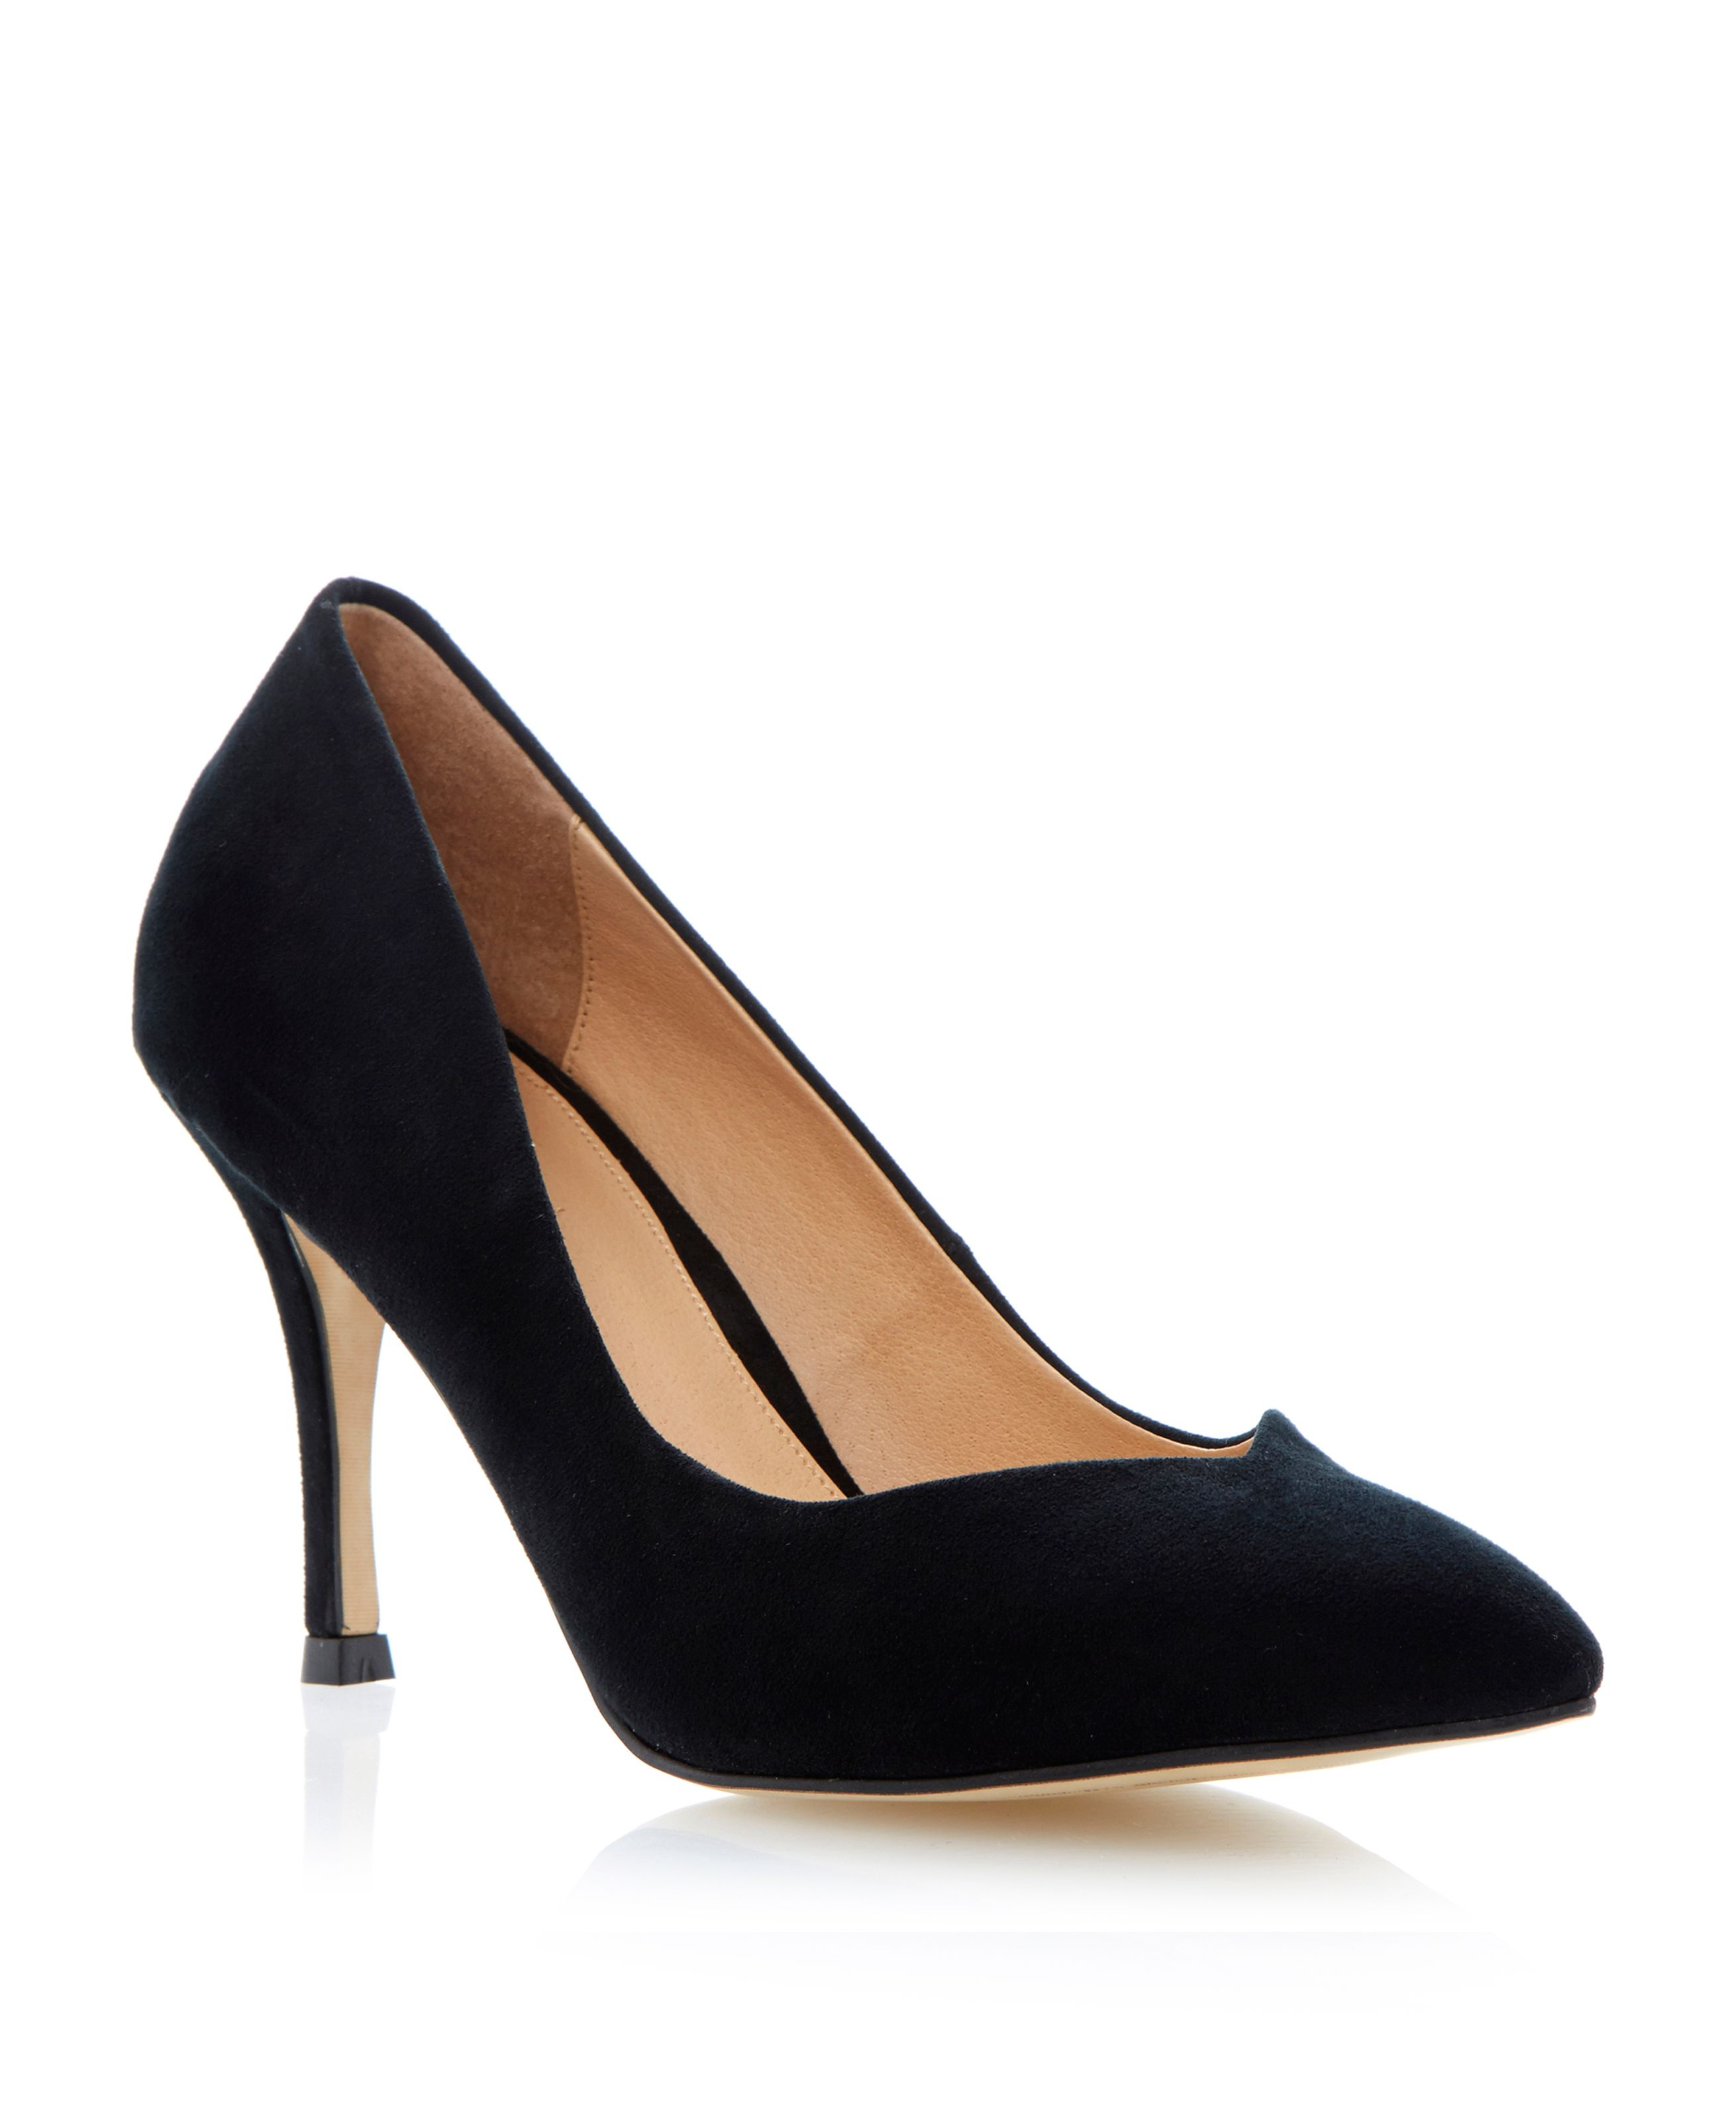 linea applejack pointed toe stiletto court shoes in black